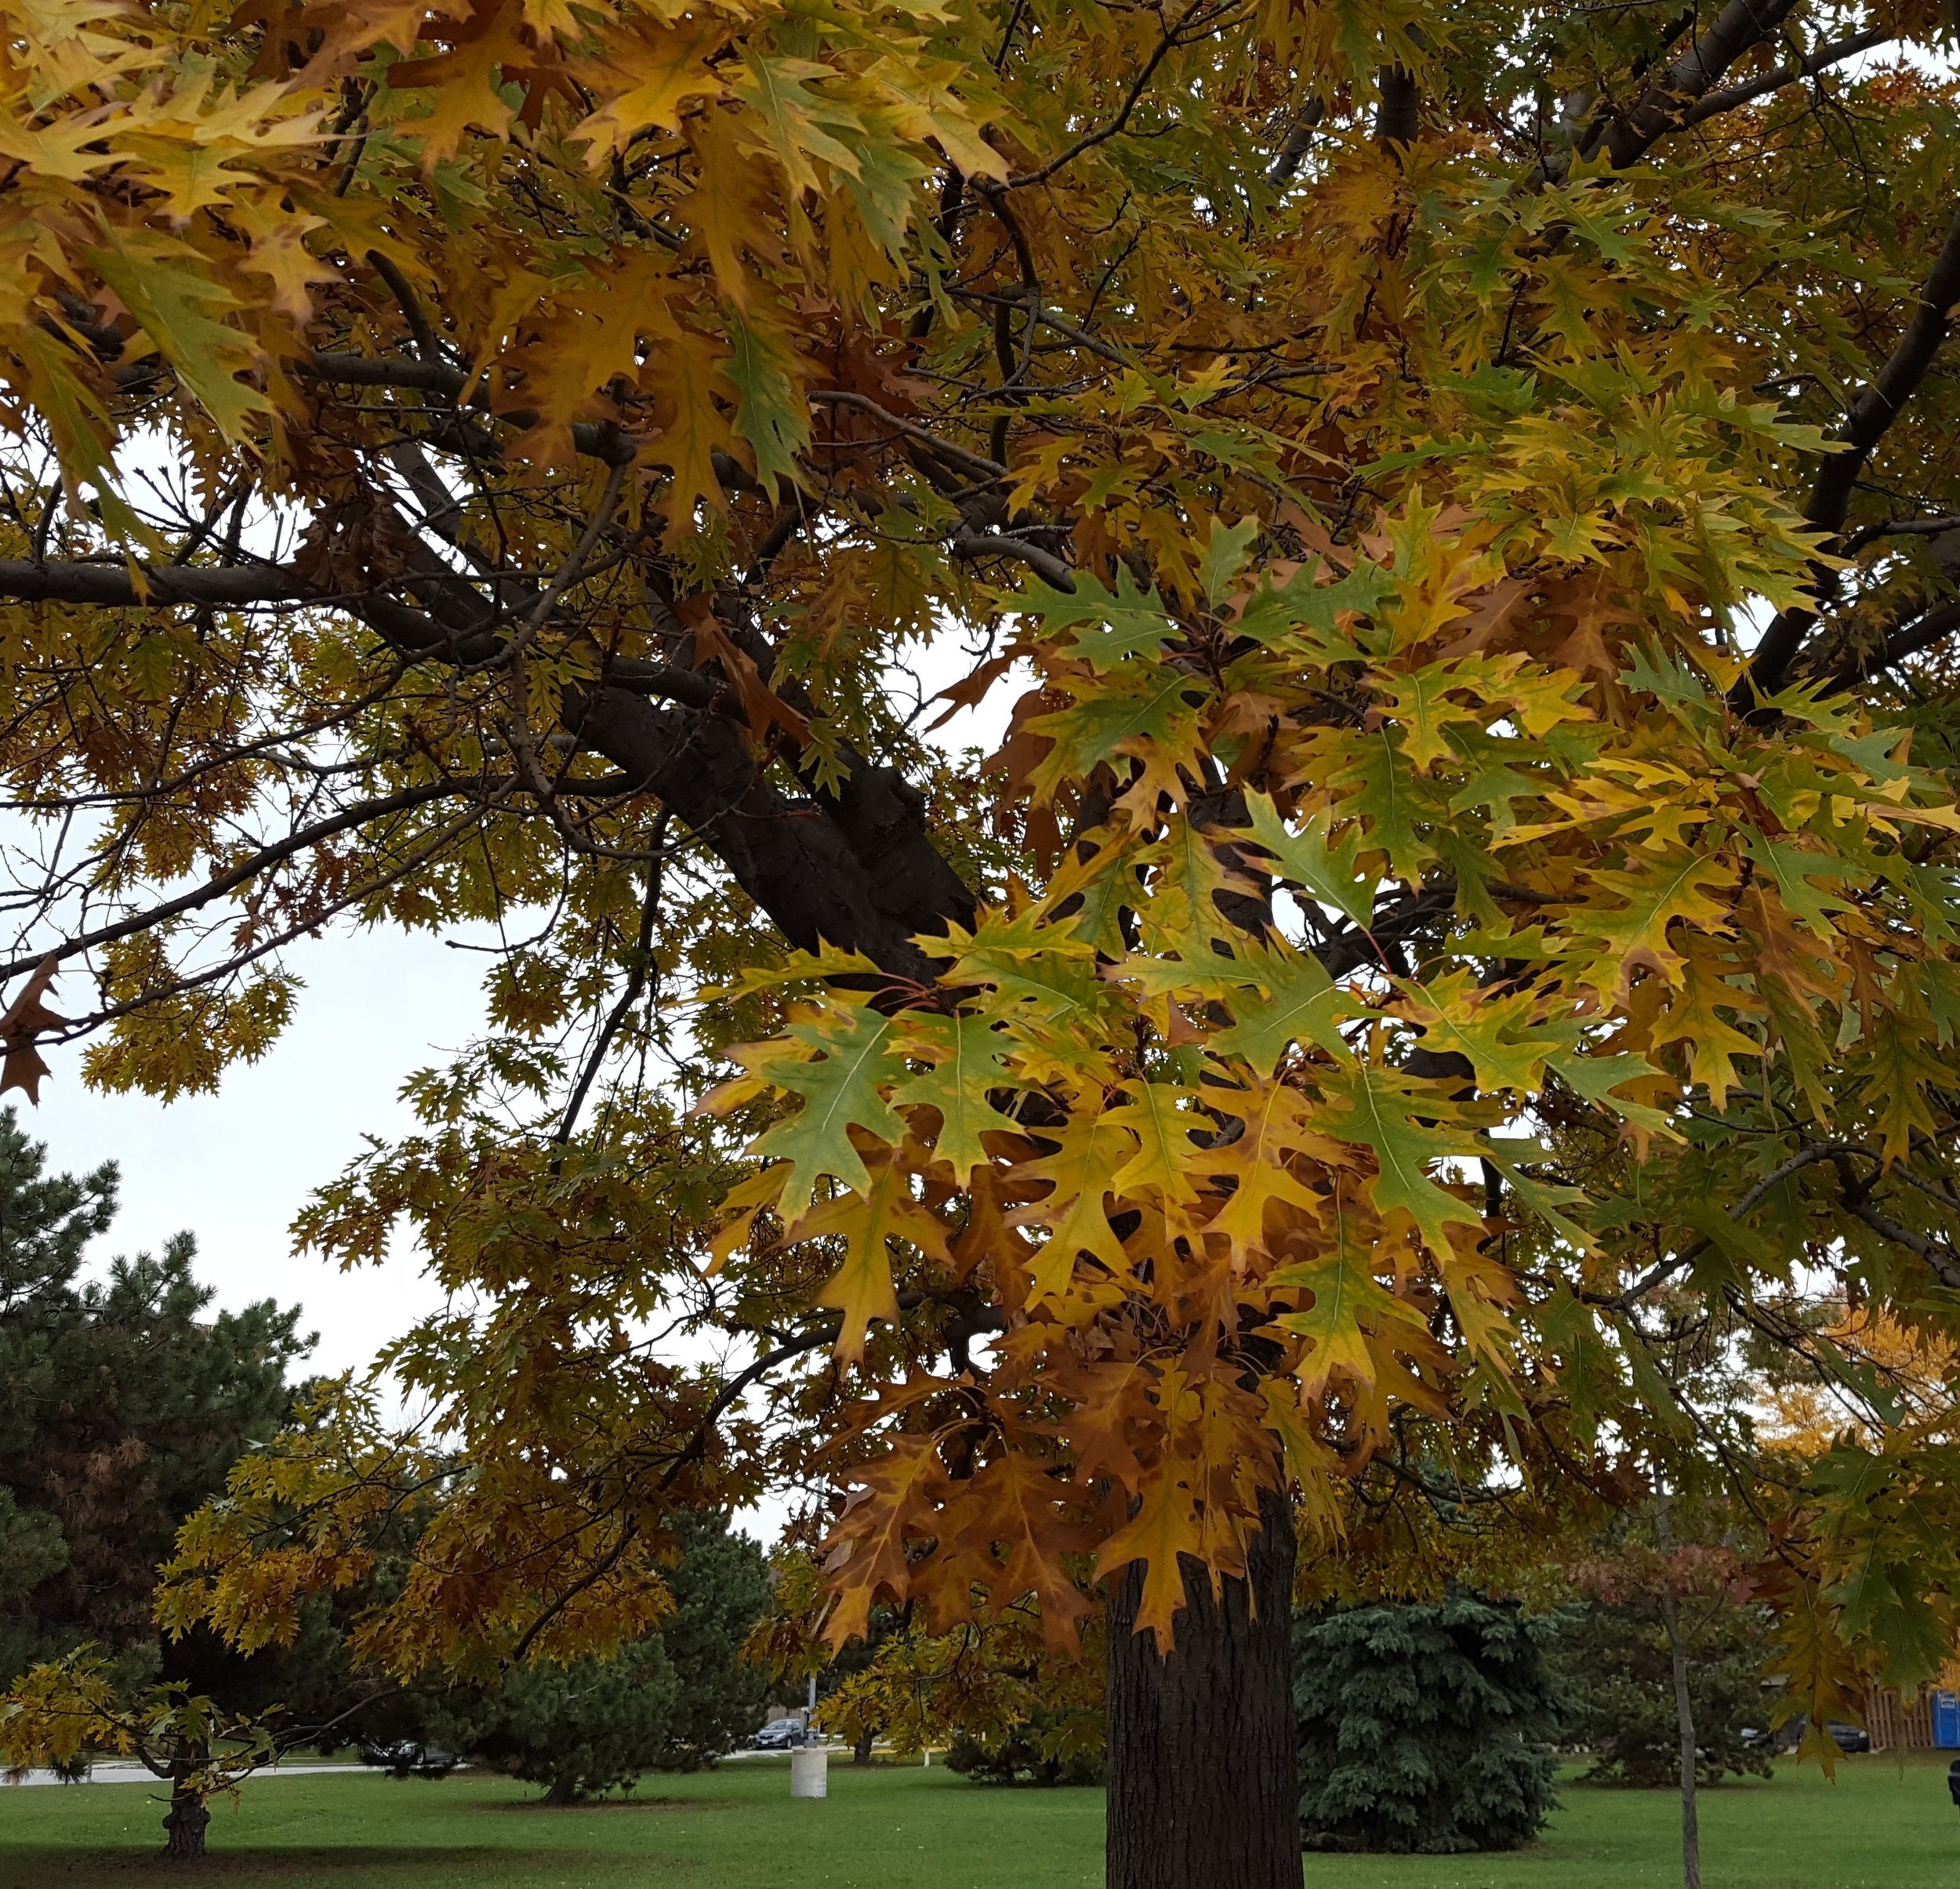 One of my favourite trees ....soon the leaves will fall but for now it is just so beautiful....